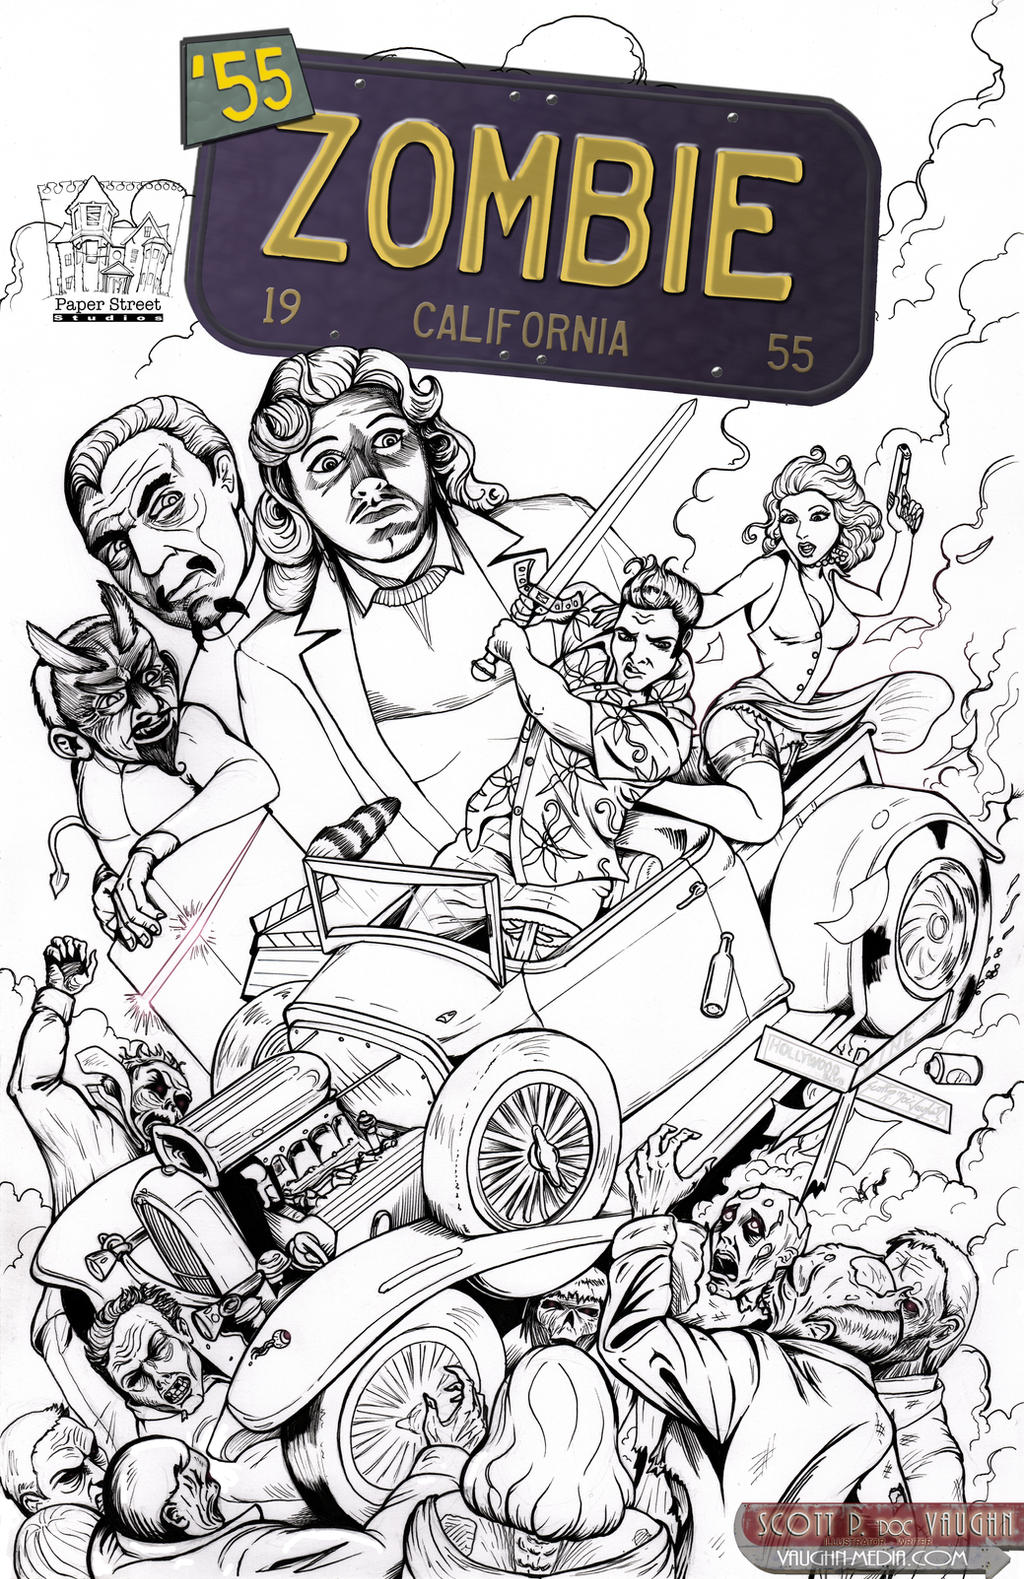 55zombie - Doc Cover lines by DocRedfield